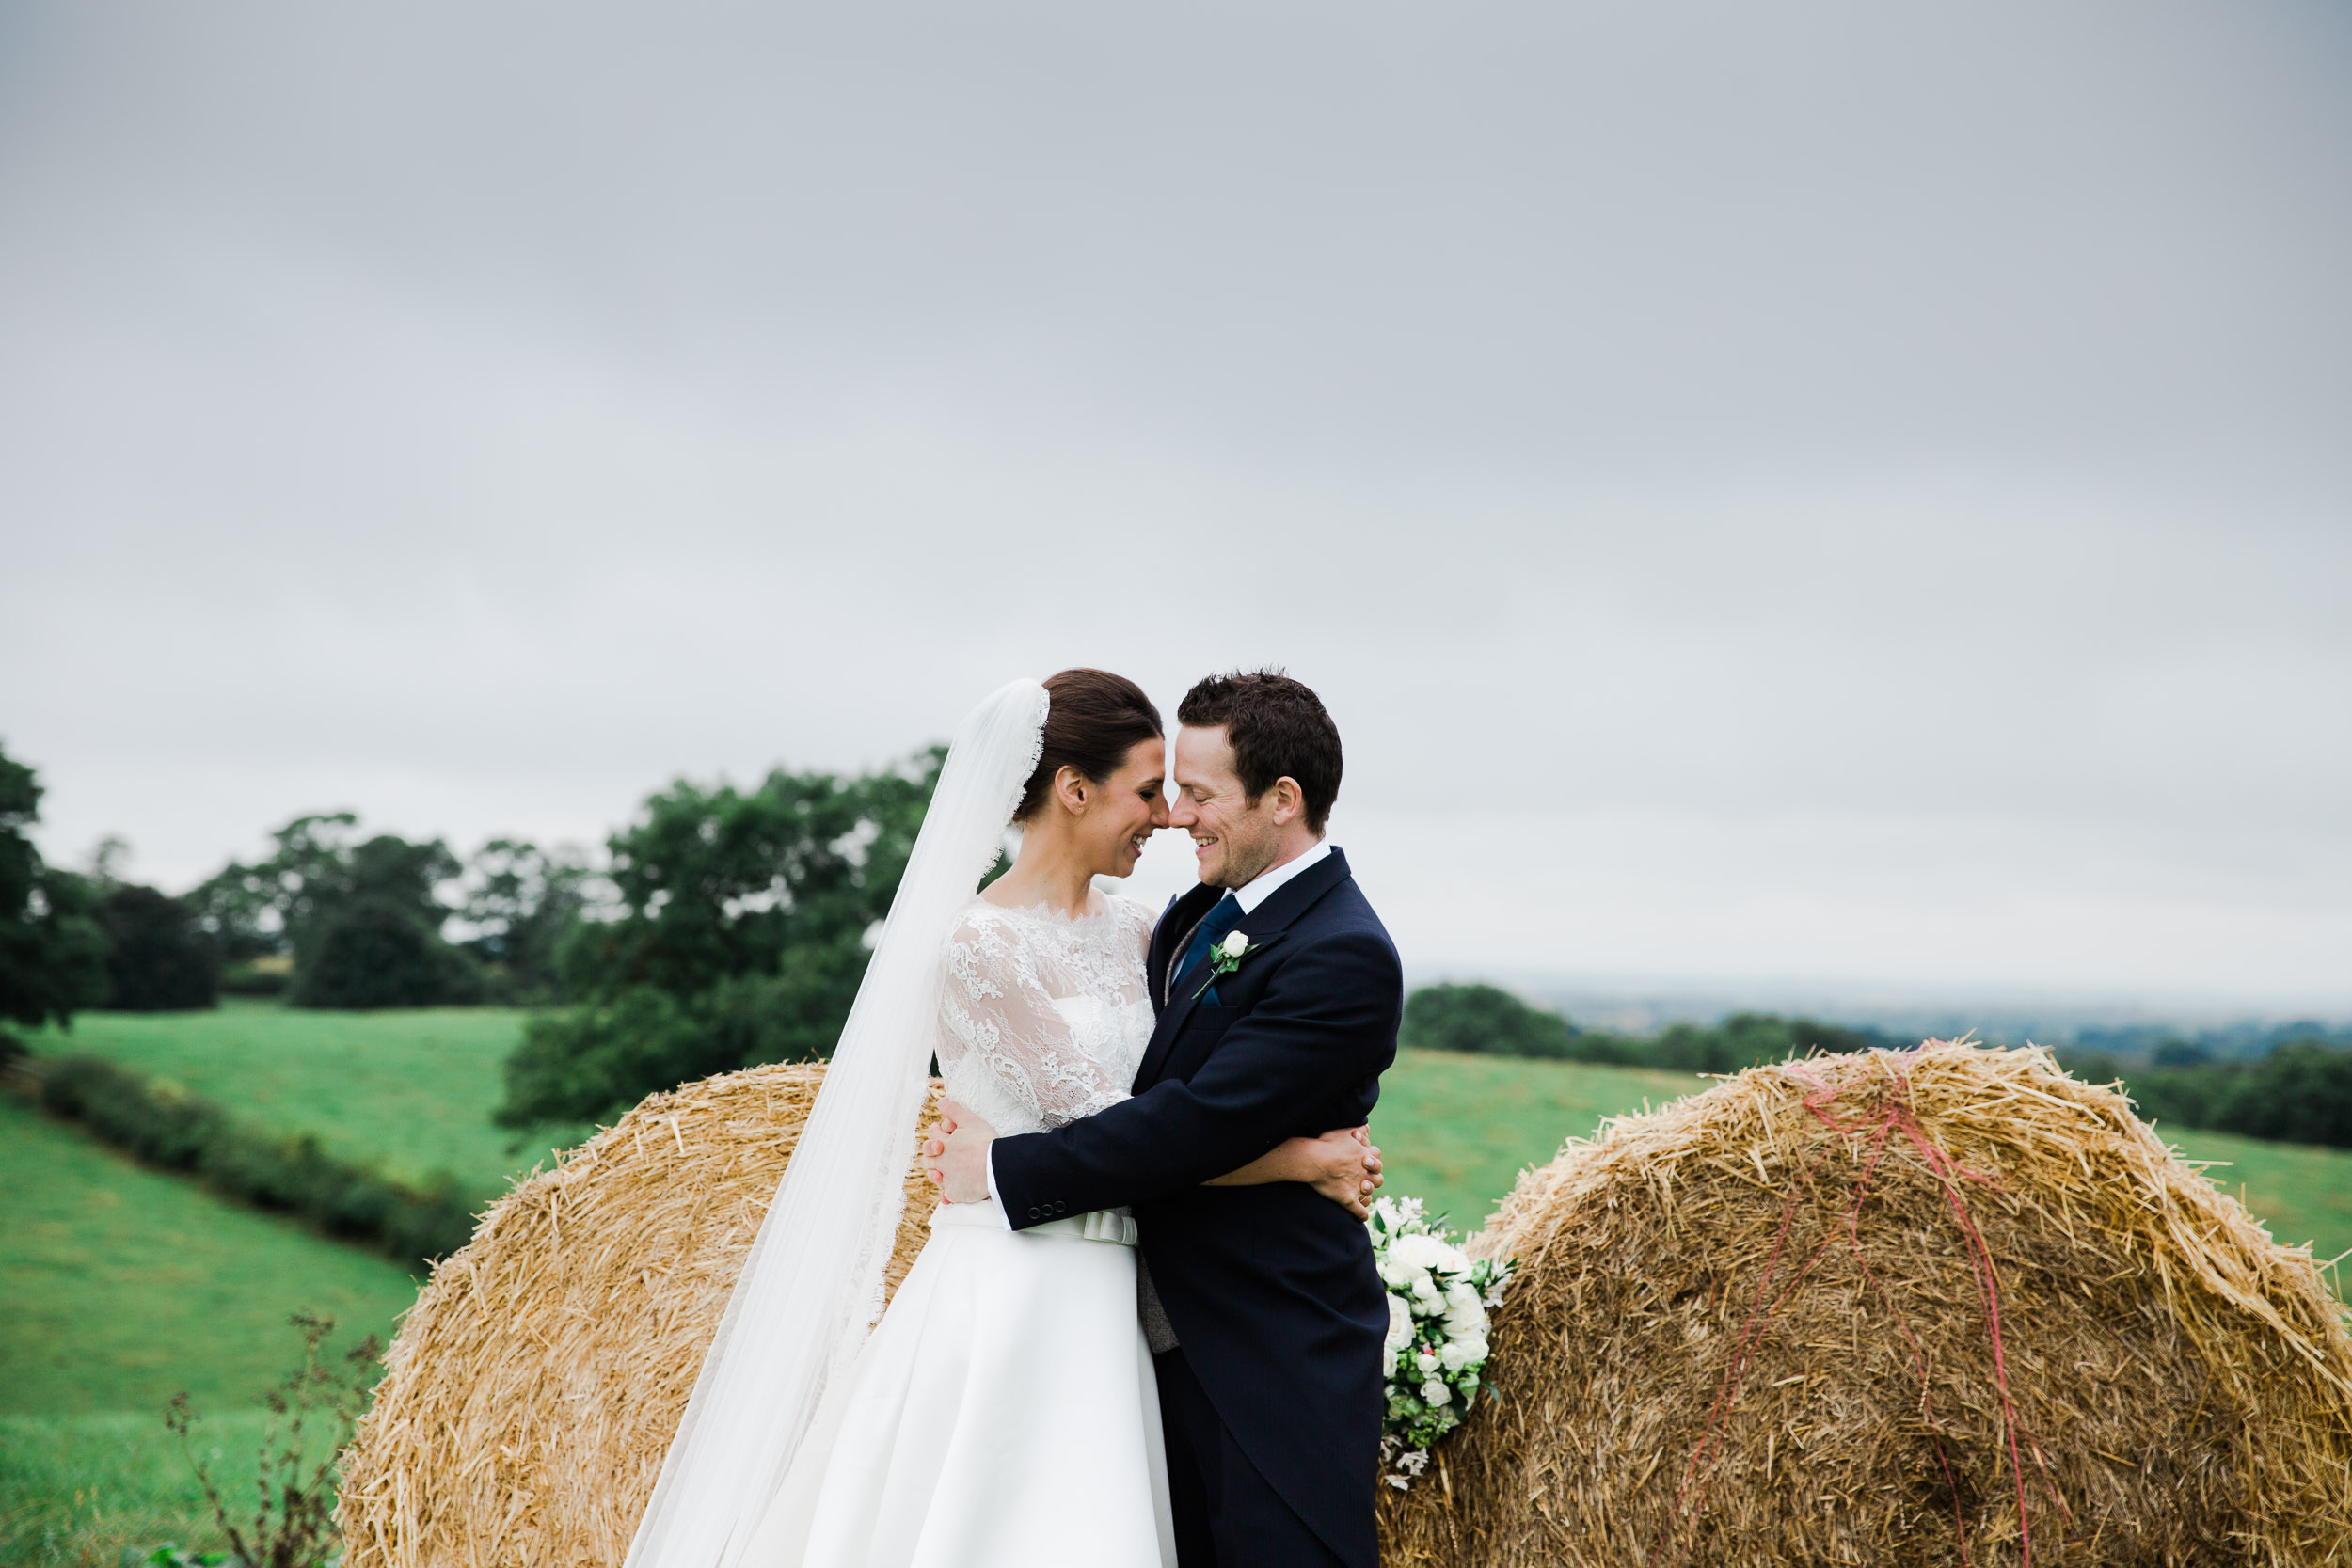 Bride and Groom Portrait with hay bales and country views